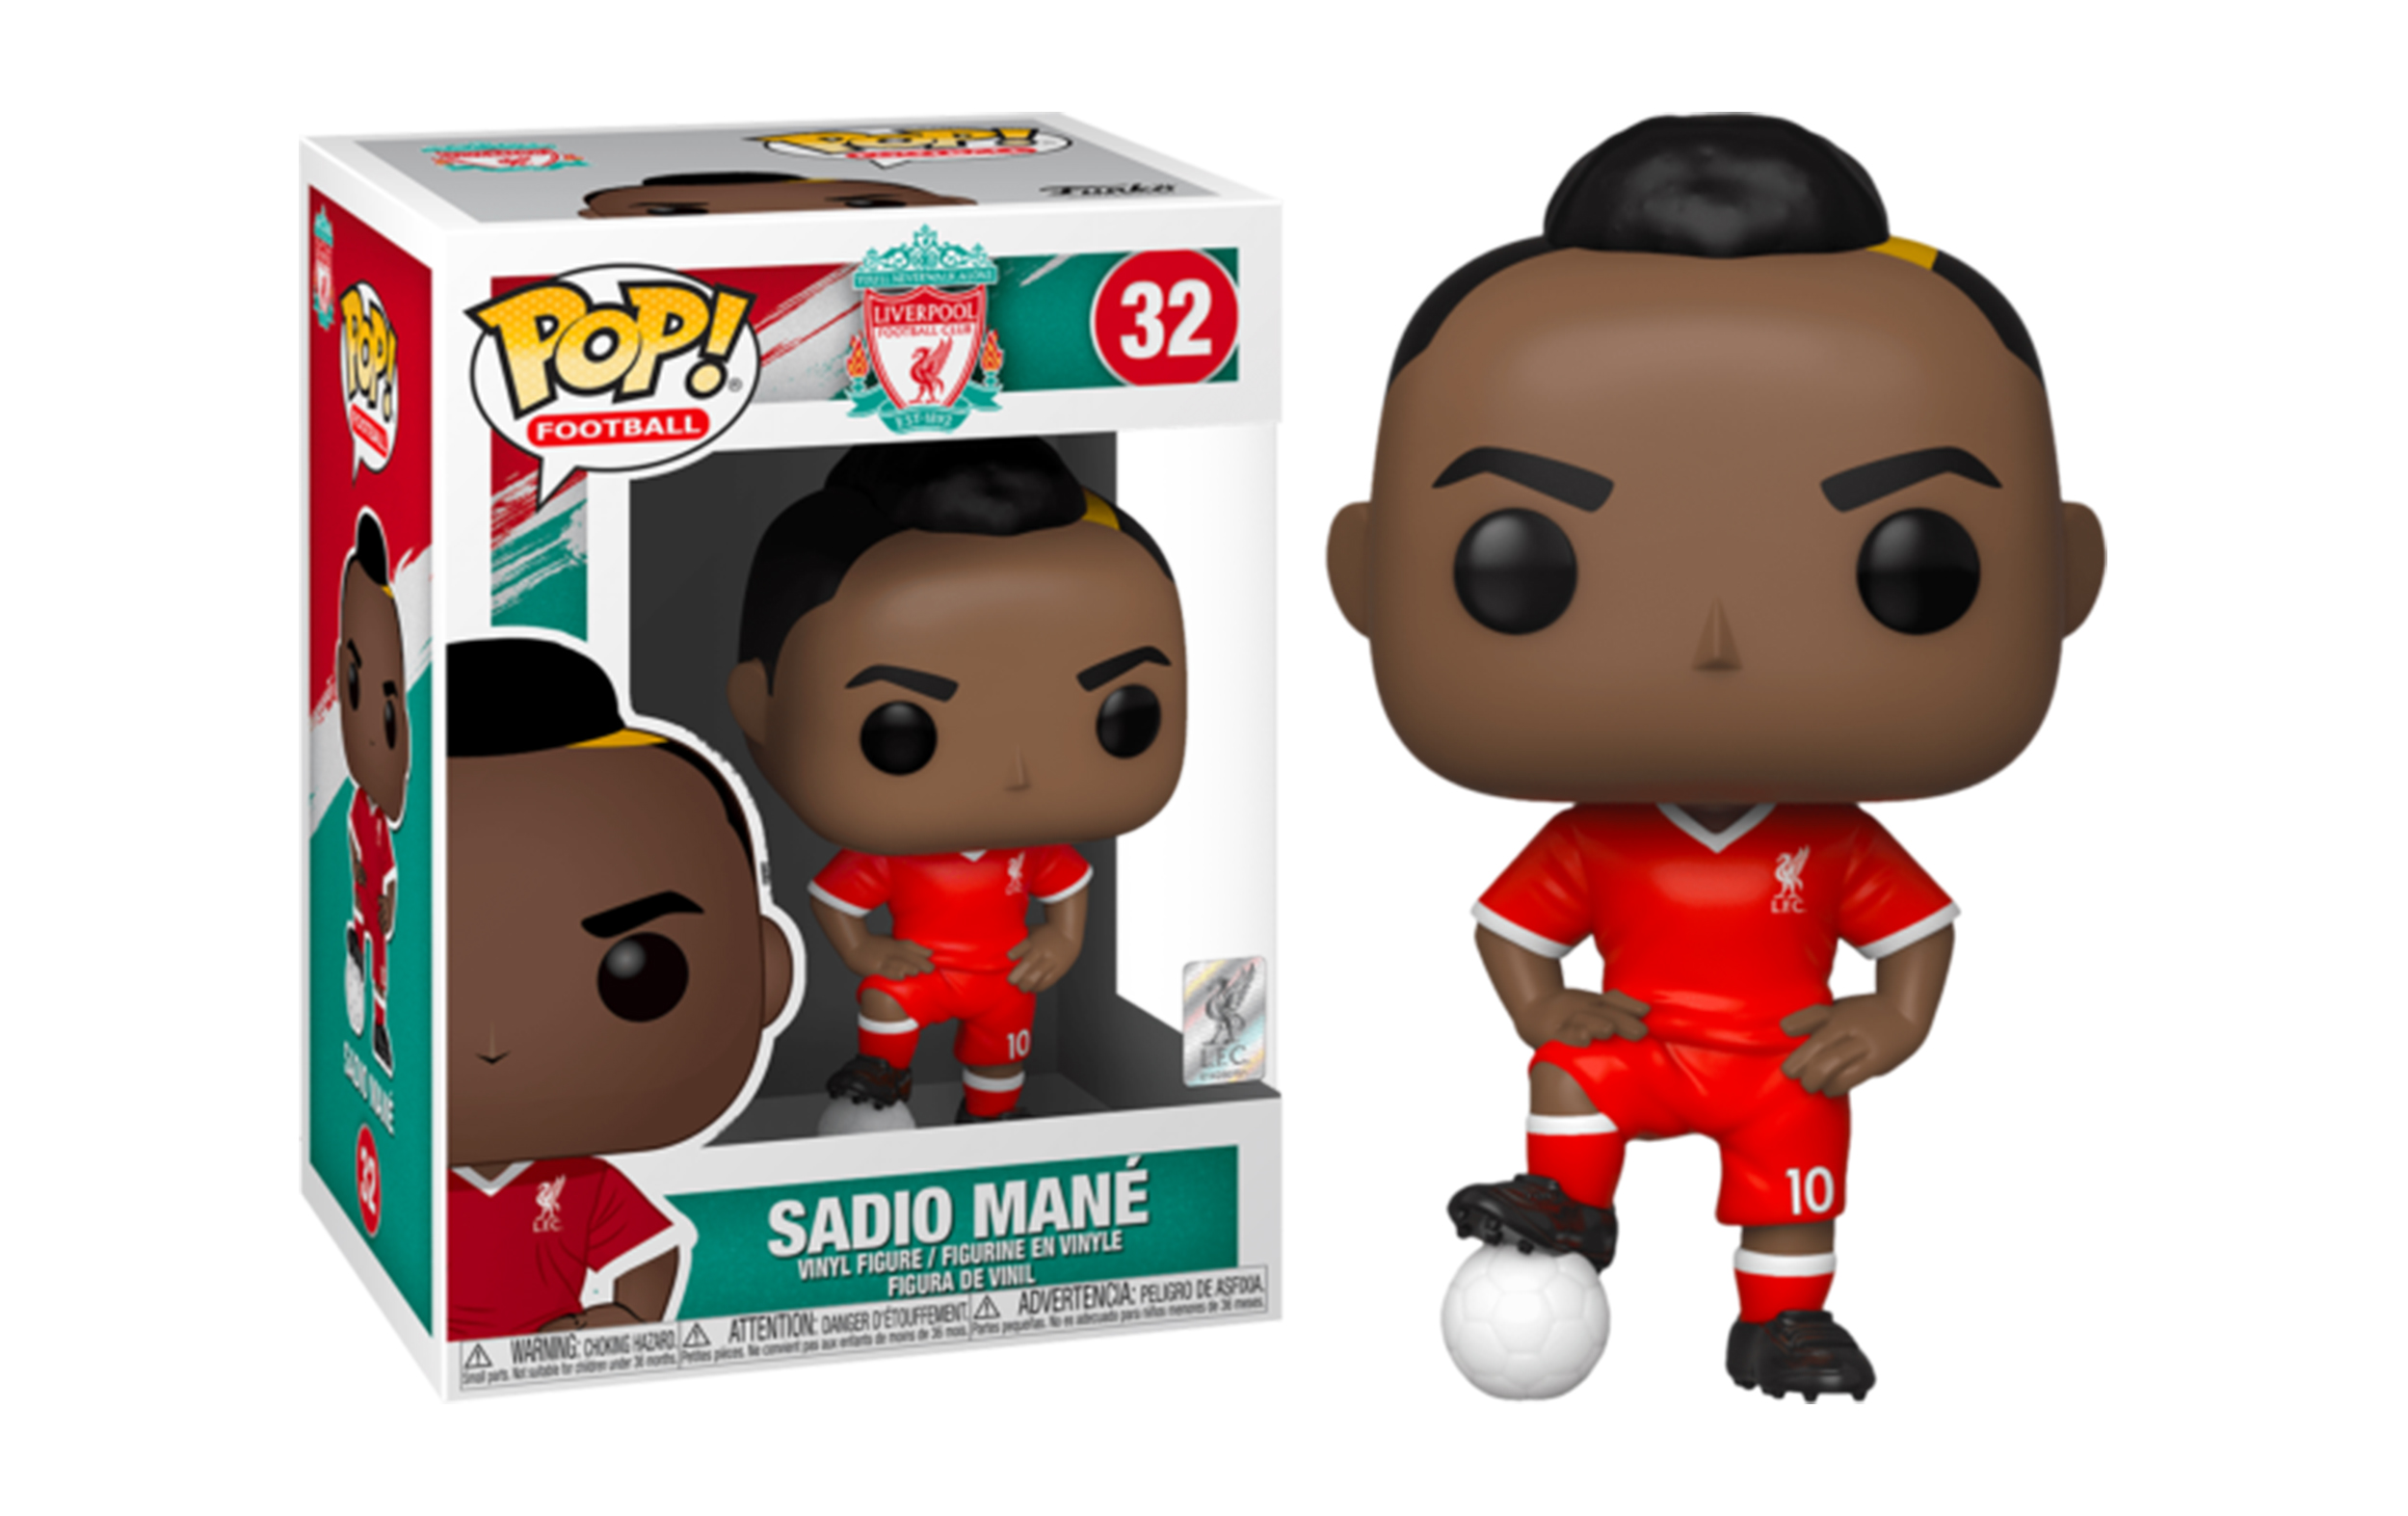 Liverpool Football Club Sadio Mane' 32 Funko POP Vinyl Figure